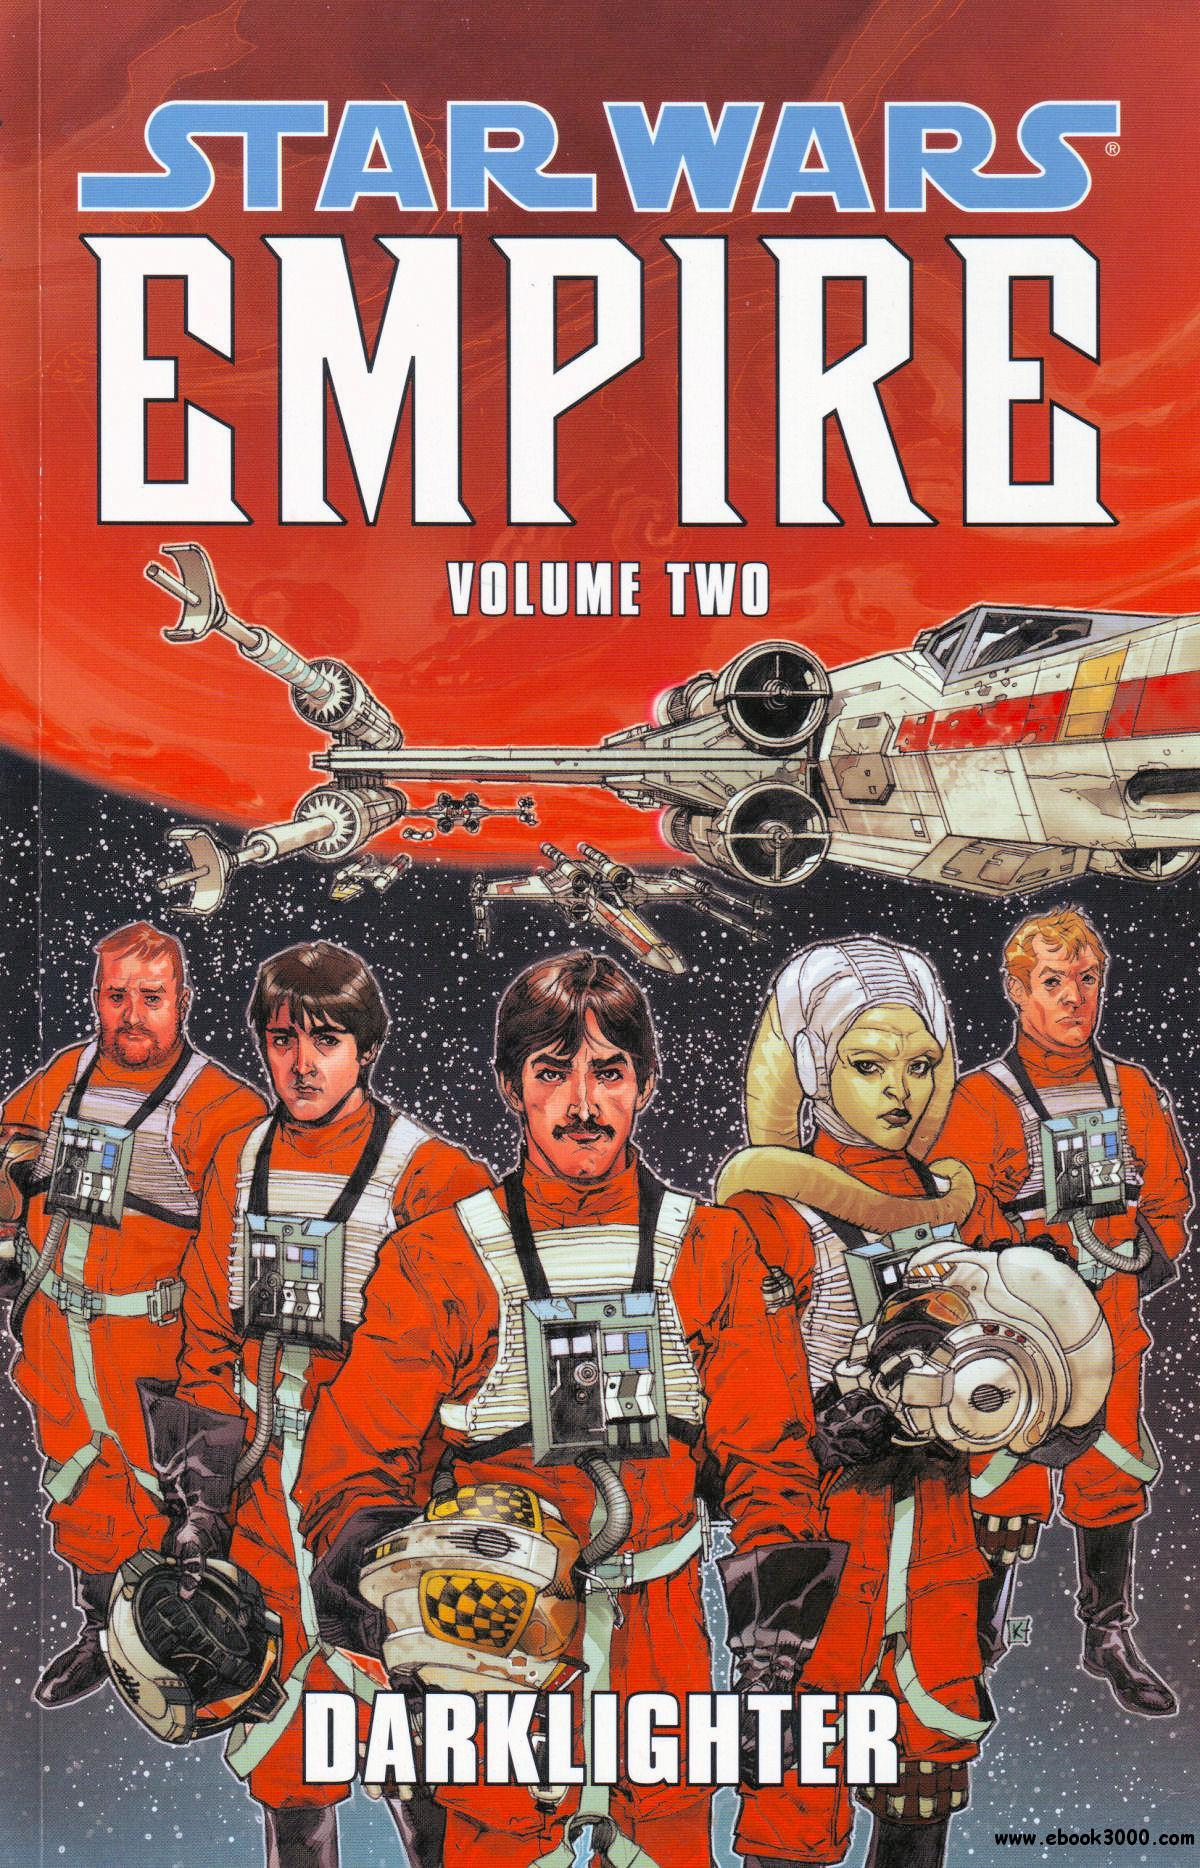 Star Wars - Empire Vol. 2 - Darklighter [TPB] (2004) free download